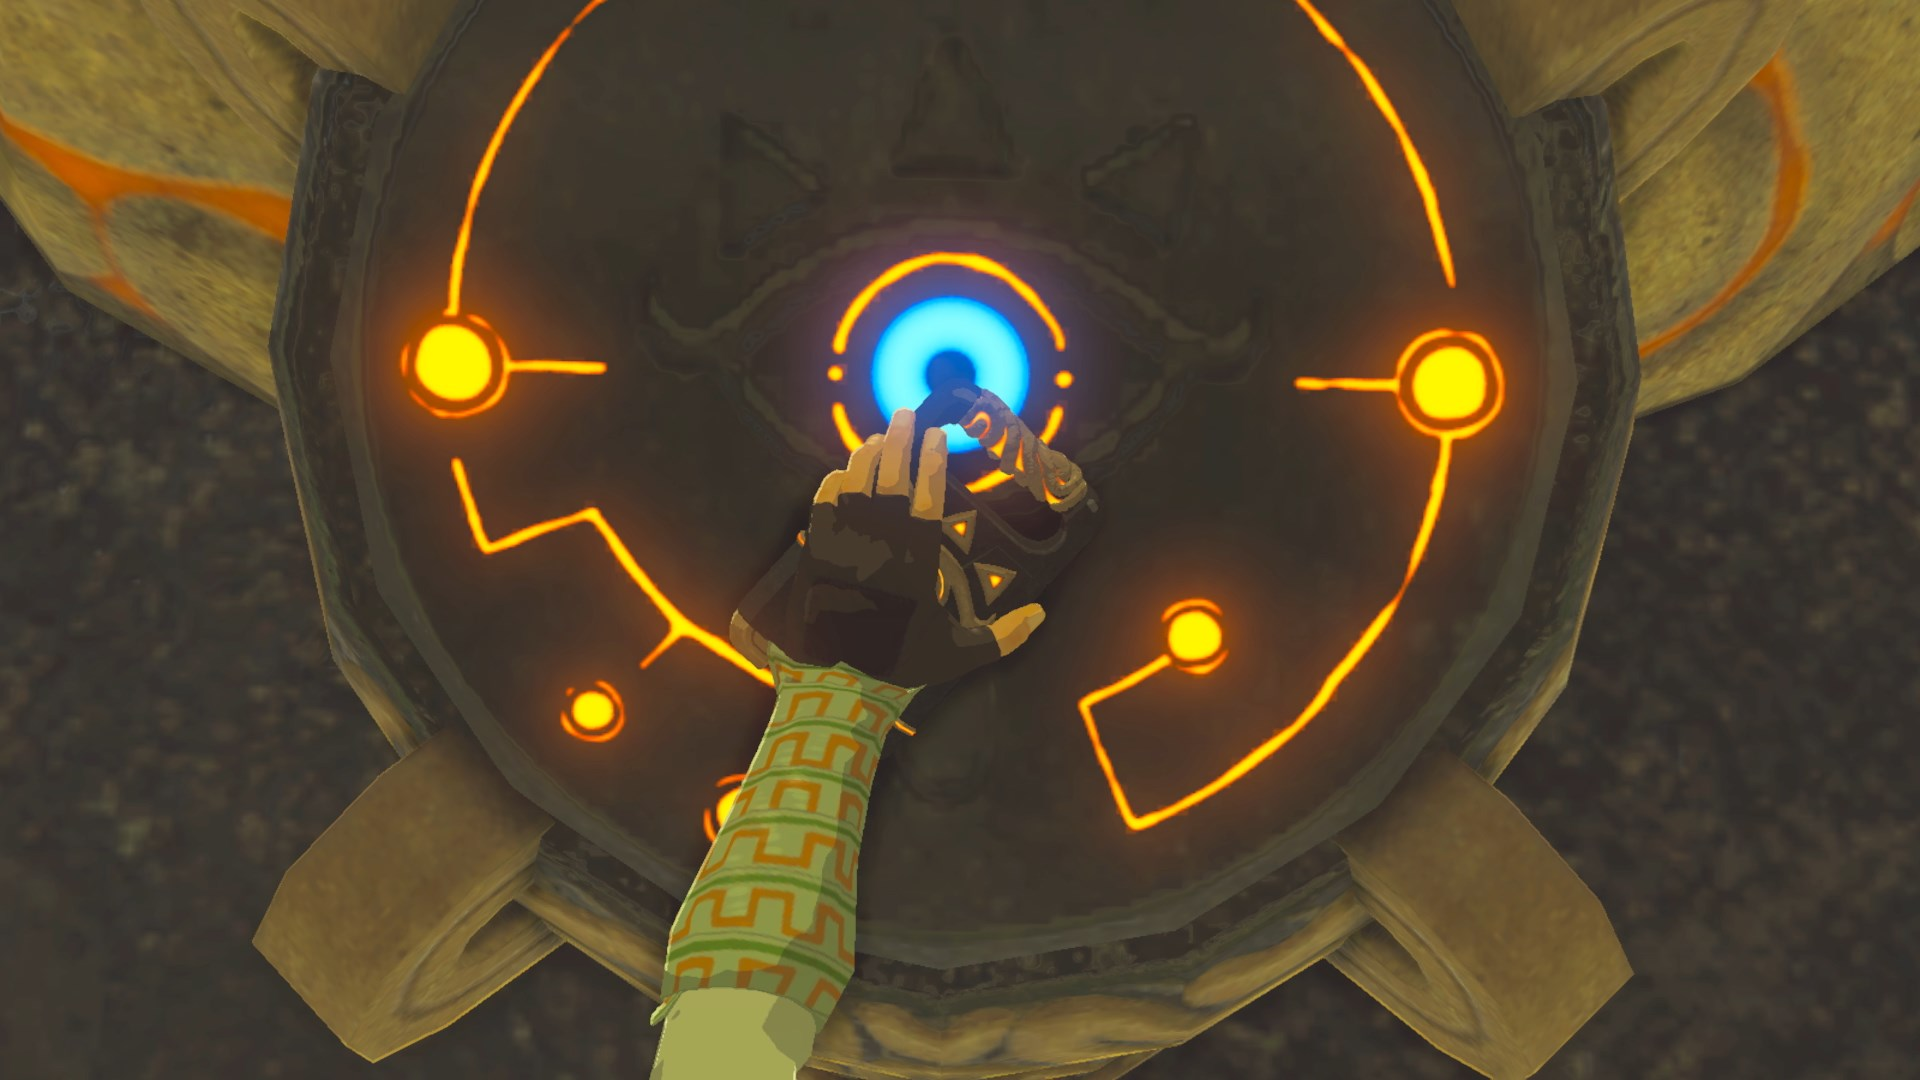 The Legend of Zelda: Breath of the Wild Sheikah Runes Phone Charger Invokes Powerful Magic